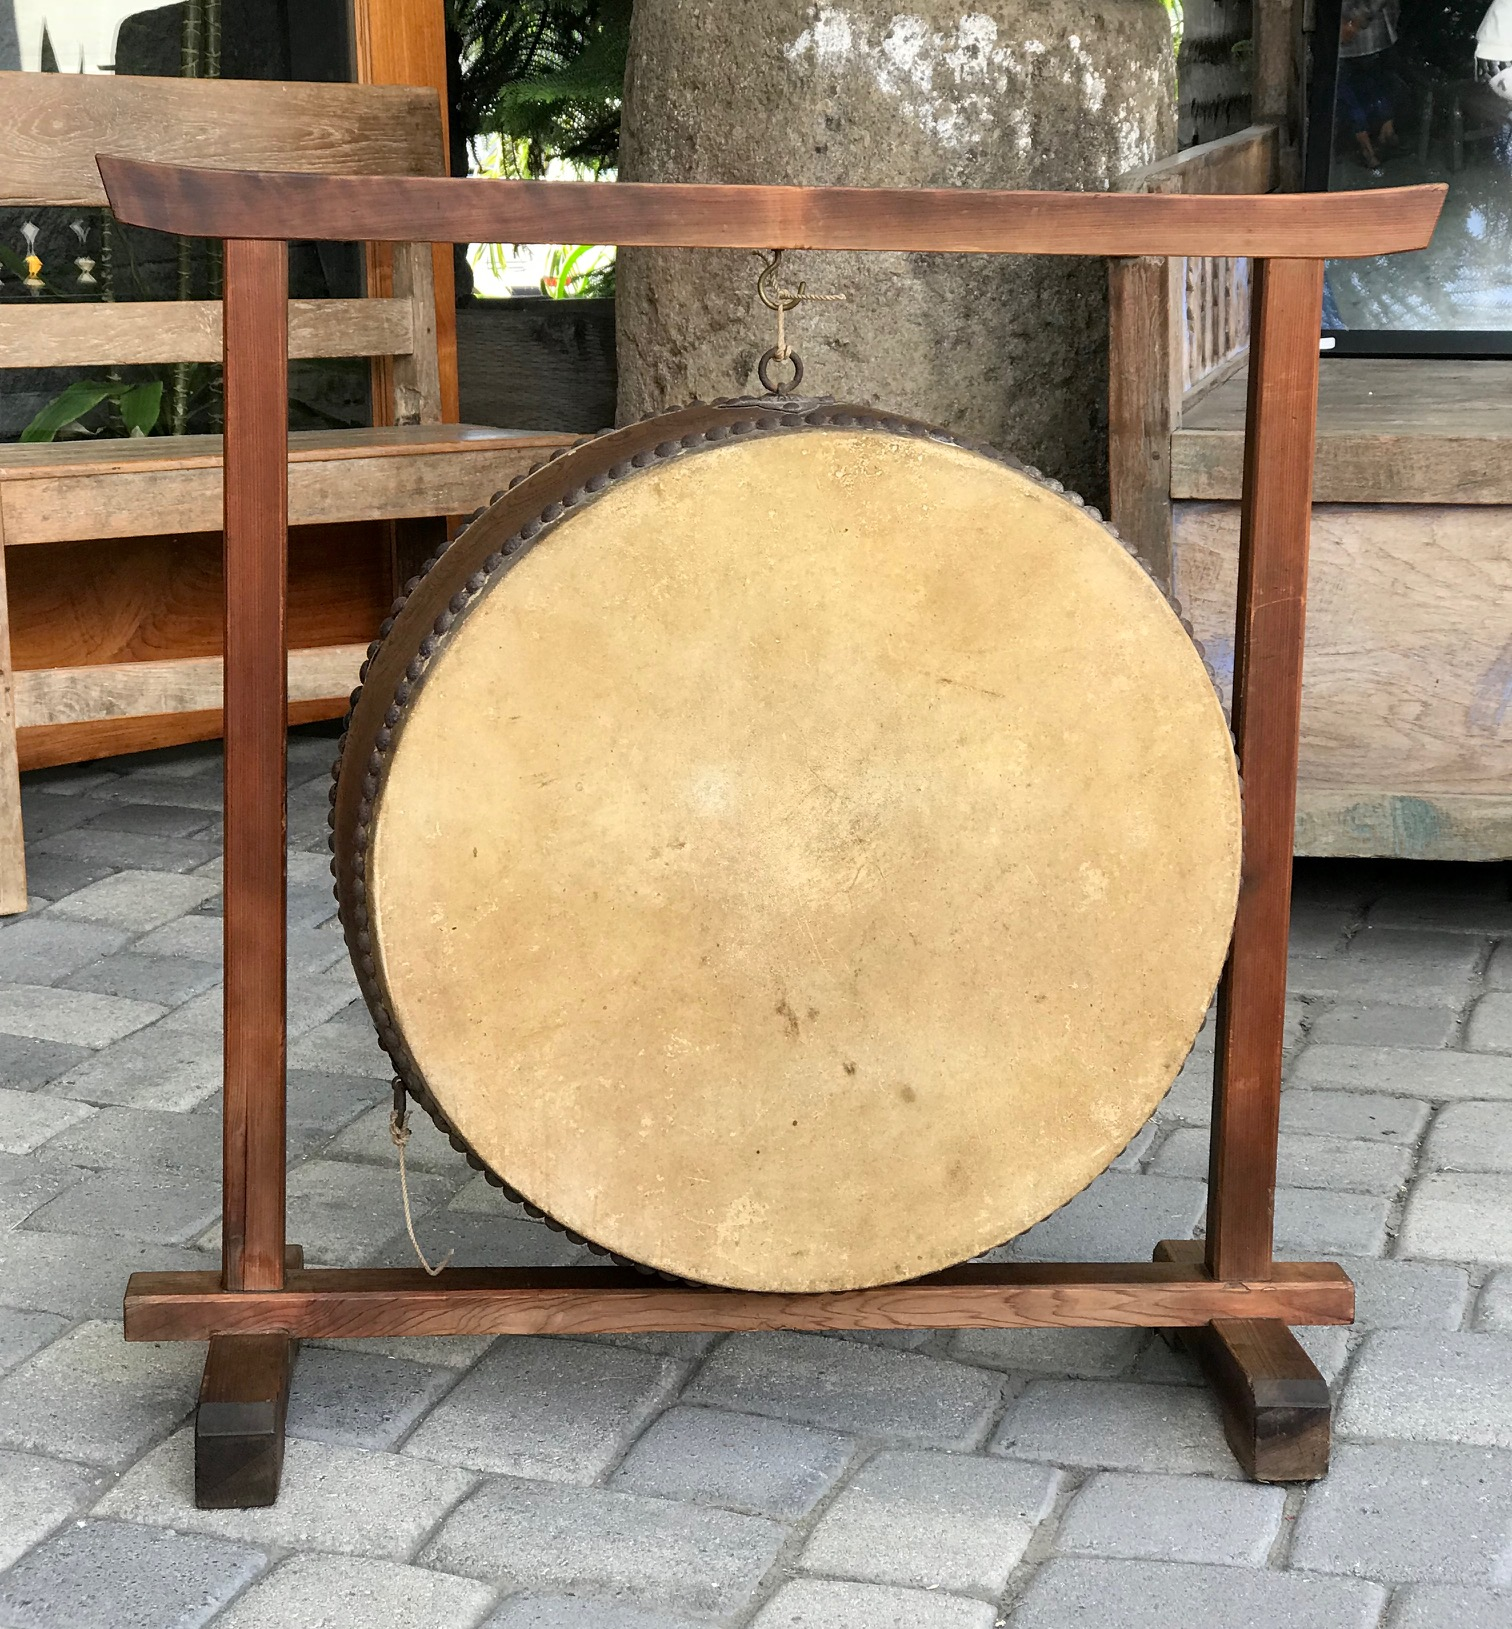 "Japanese Hanging Temple Drum, wood, rawhide, metal tacks and rings, 22 1/2"" x 33"", (31"" x 33"" with frame), $950.; thedavidalancollection.com , solana beach, ca"